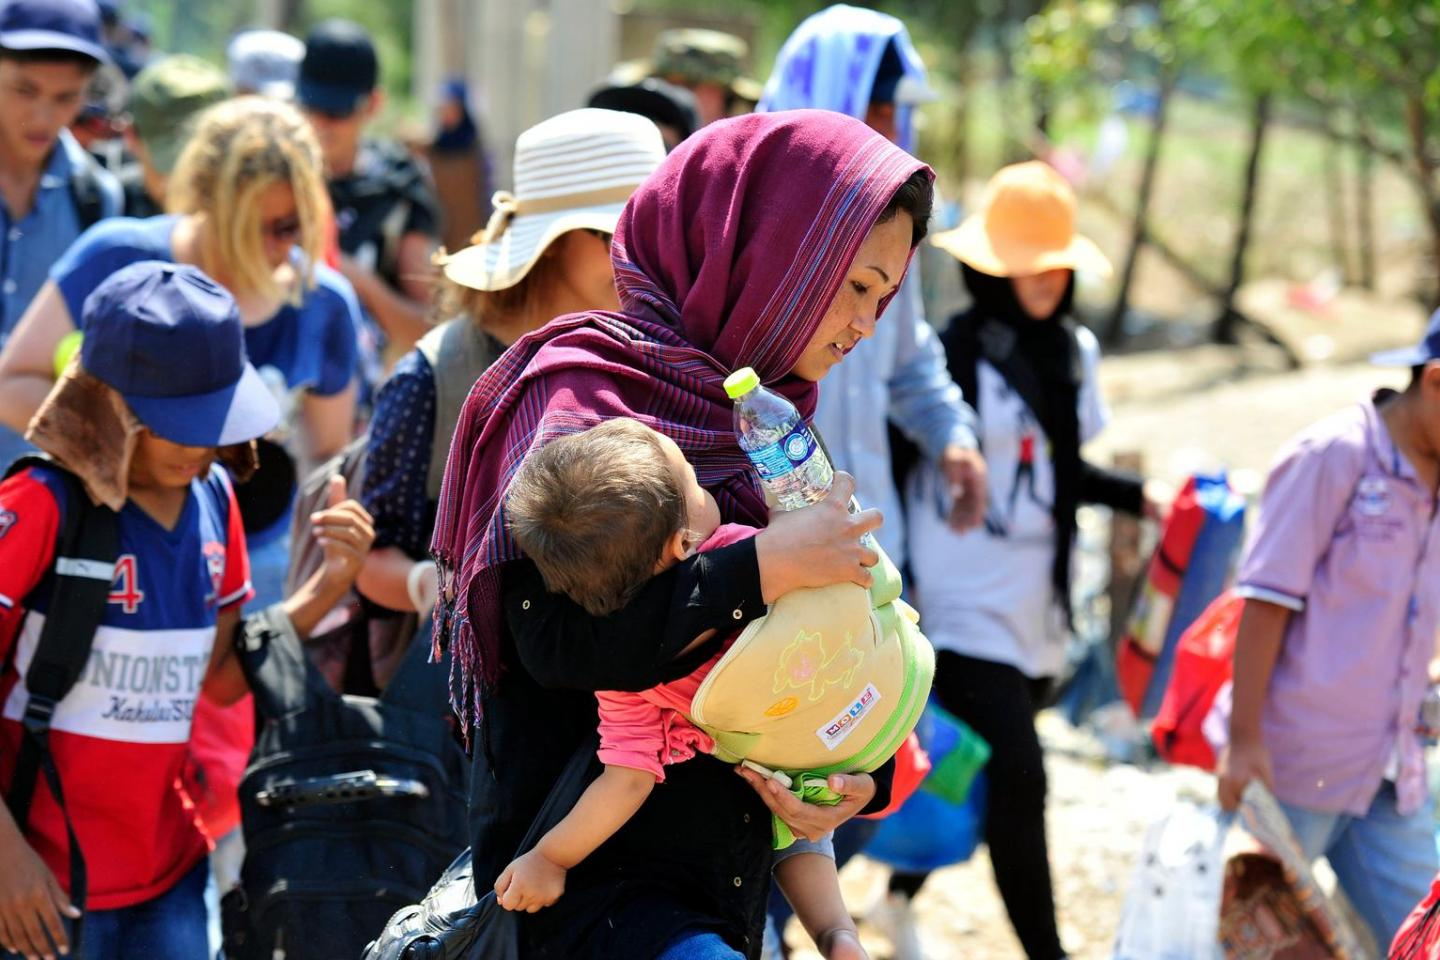 Women and children seeking refuge in Europe